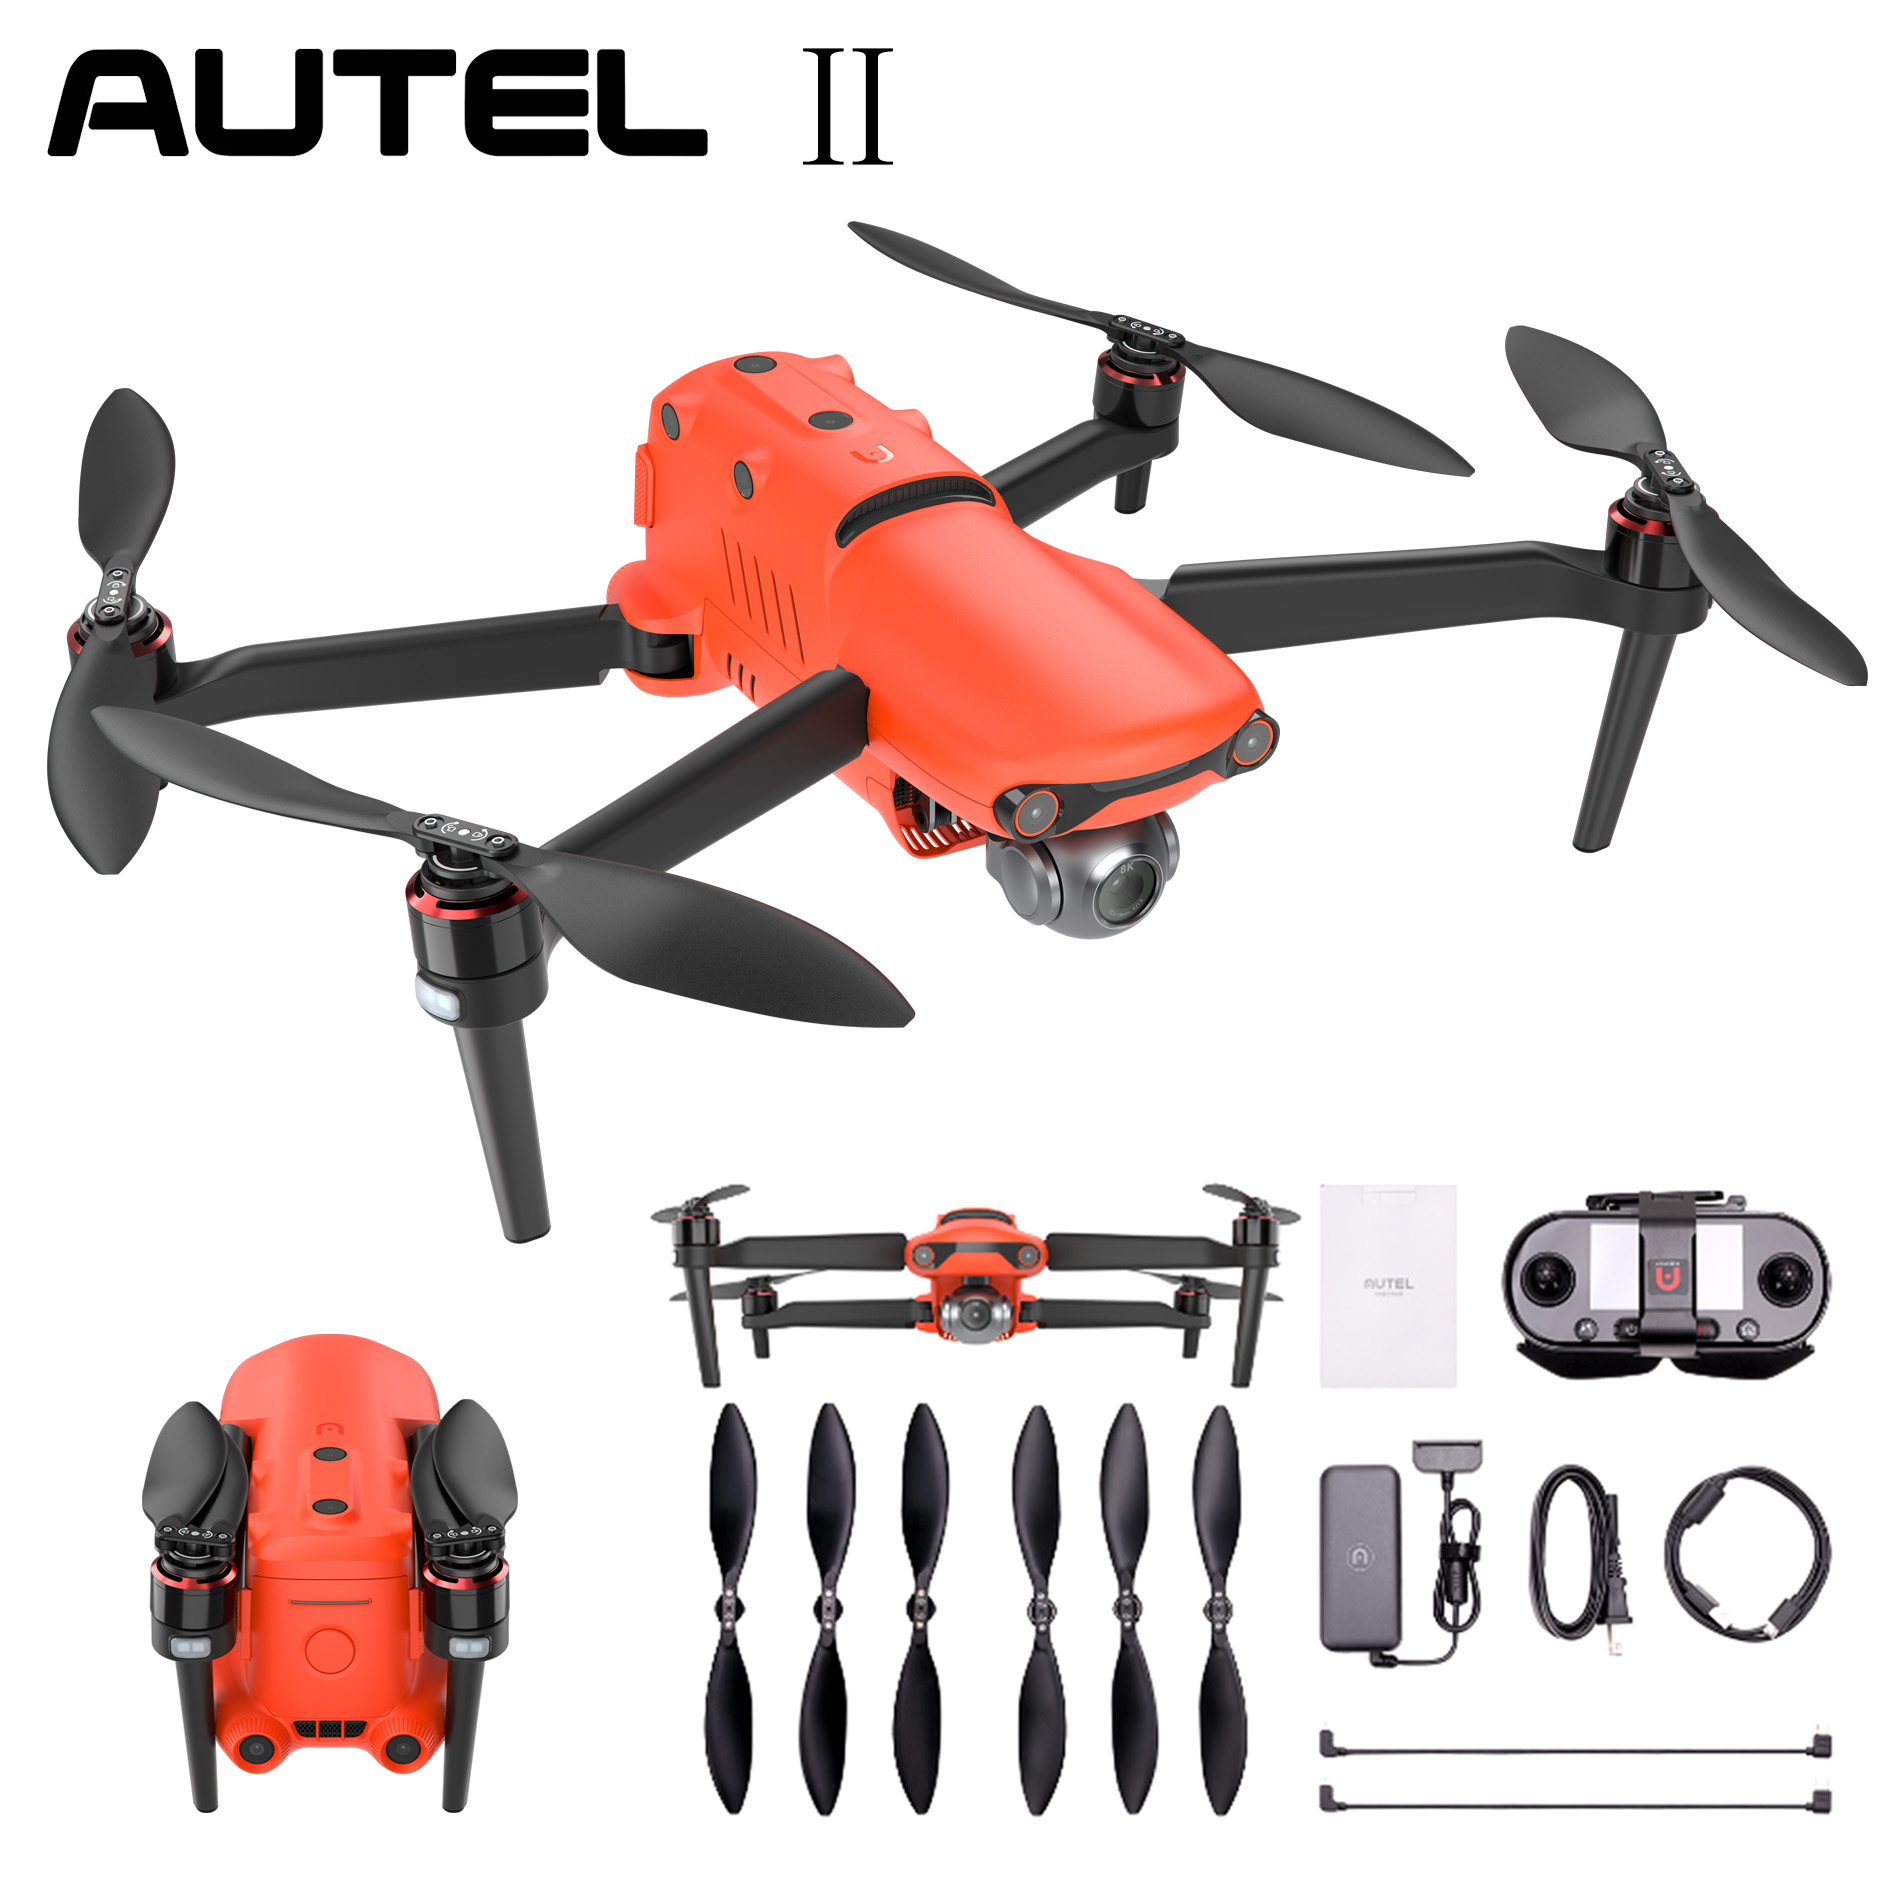 Autel Robotics EVO Drone Quadcopter Camera 8K 60fps Ultra HD Video Photos Portable(Standard Edition)